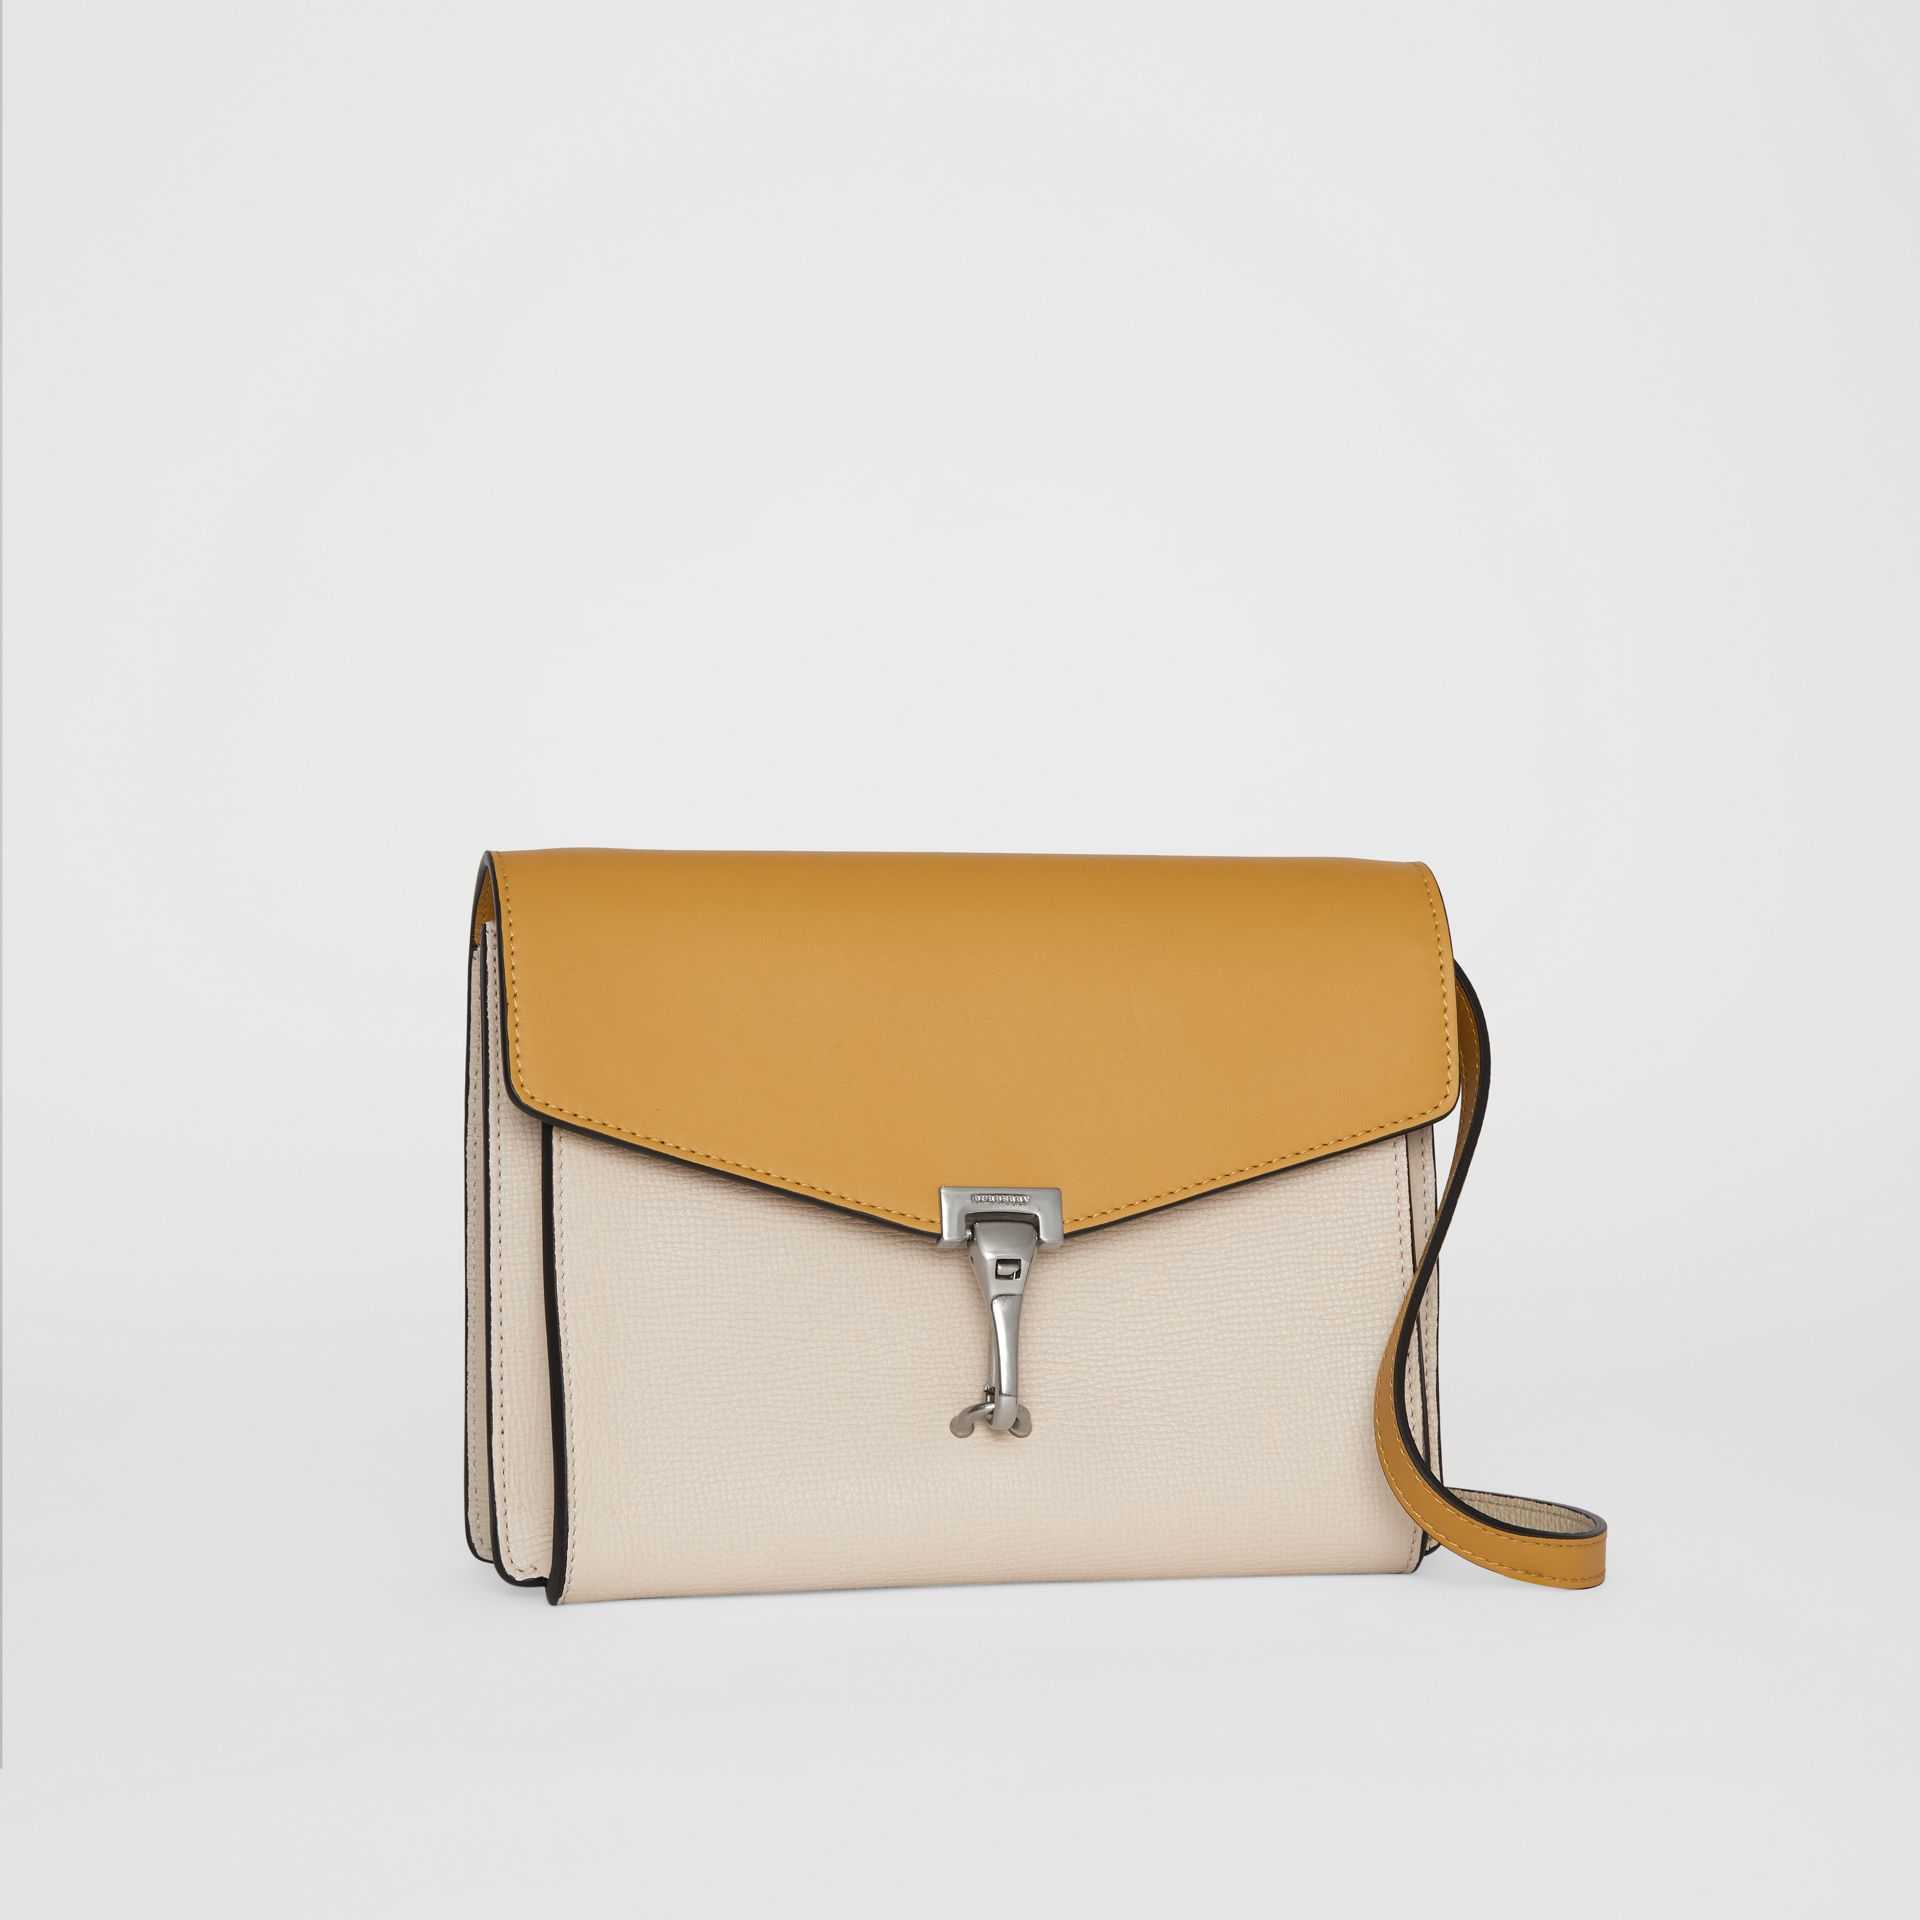 Two-tone Leather Crossbody Bag in Limestone/cornflower Yellow - Women | Burberry United Kingdom - gallery image 6